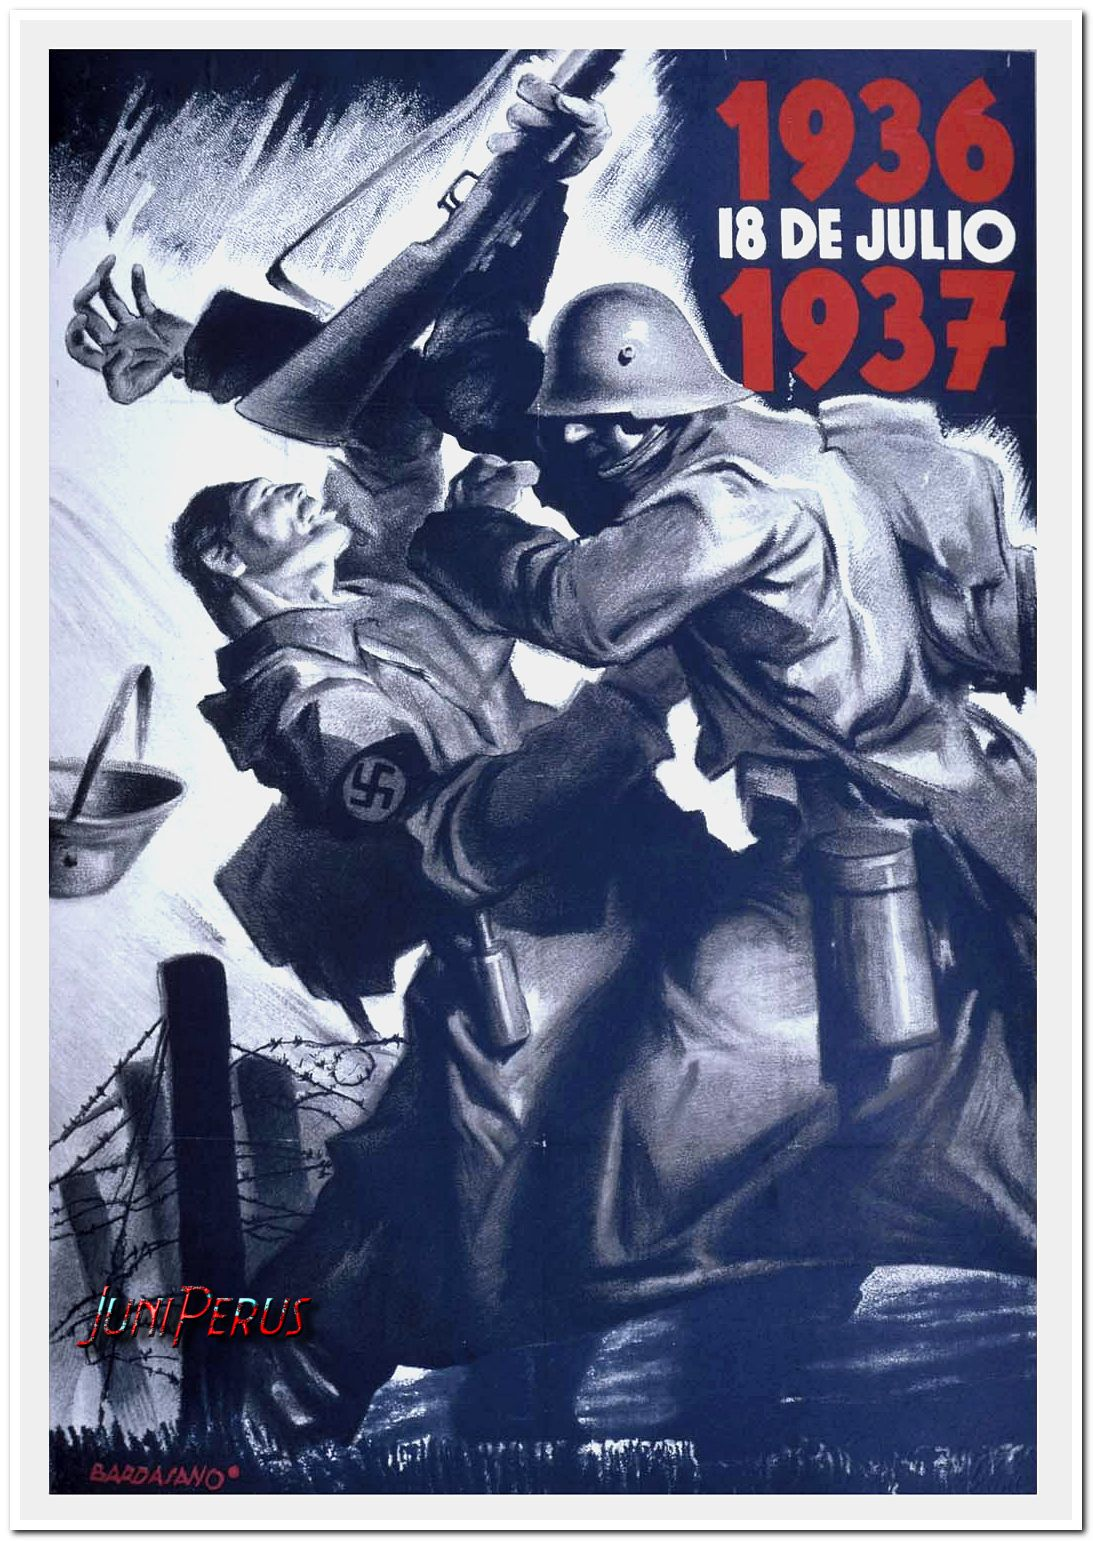 1936 18 de julio 1937. Bardasano - Spanish Civil war